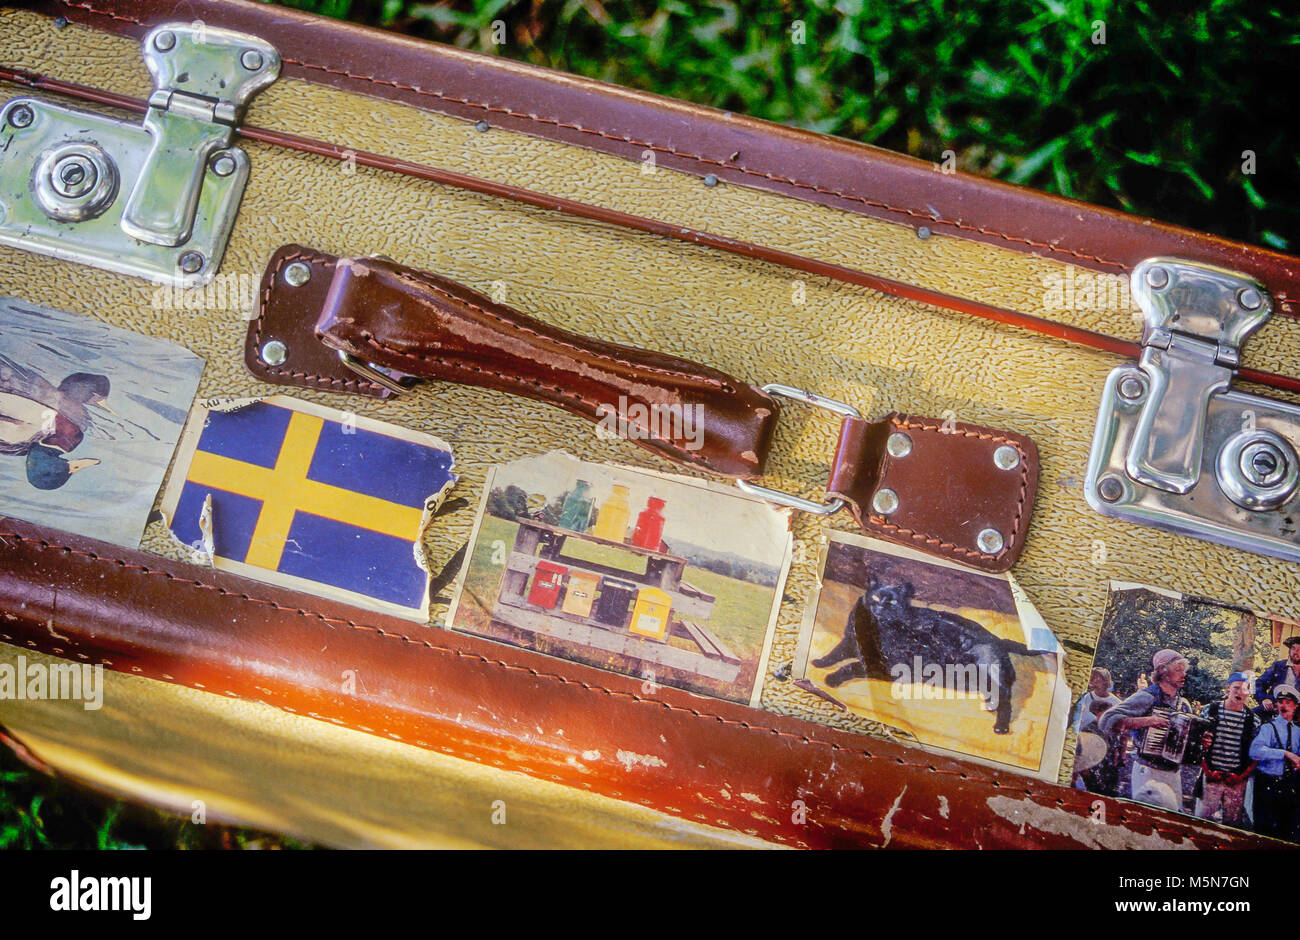 Suitcase with labels - Stock Image